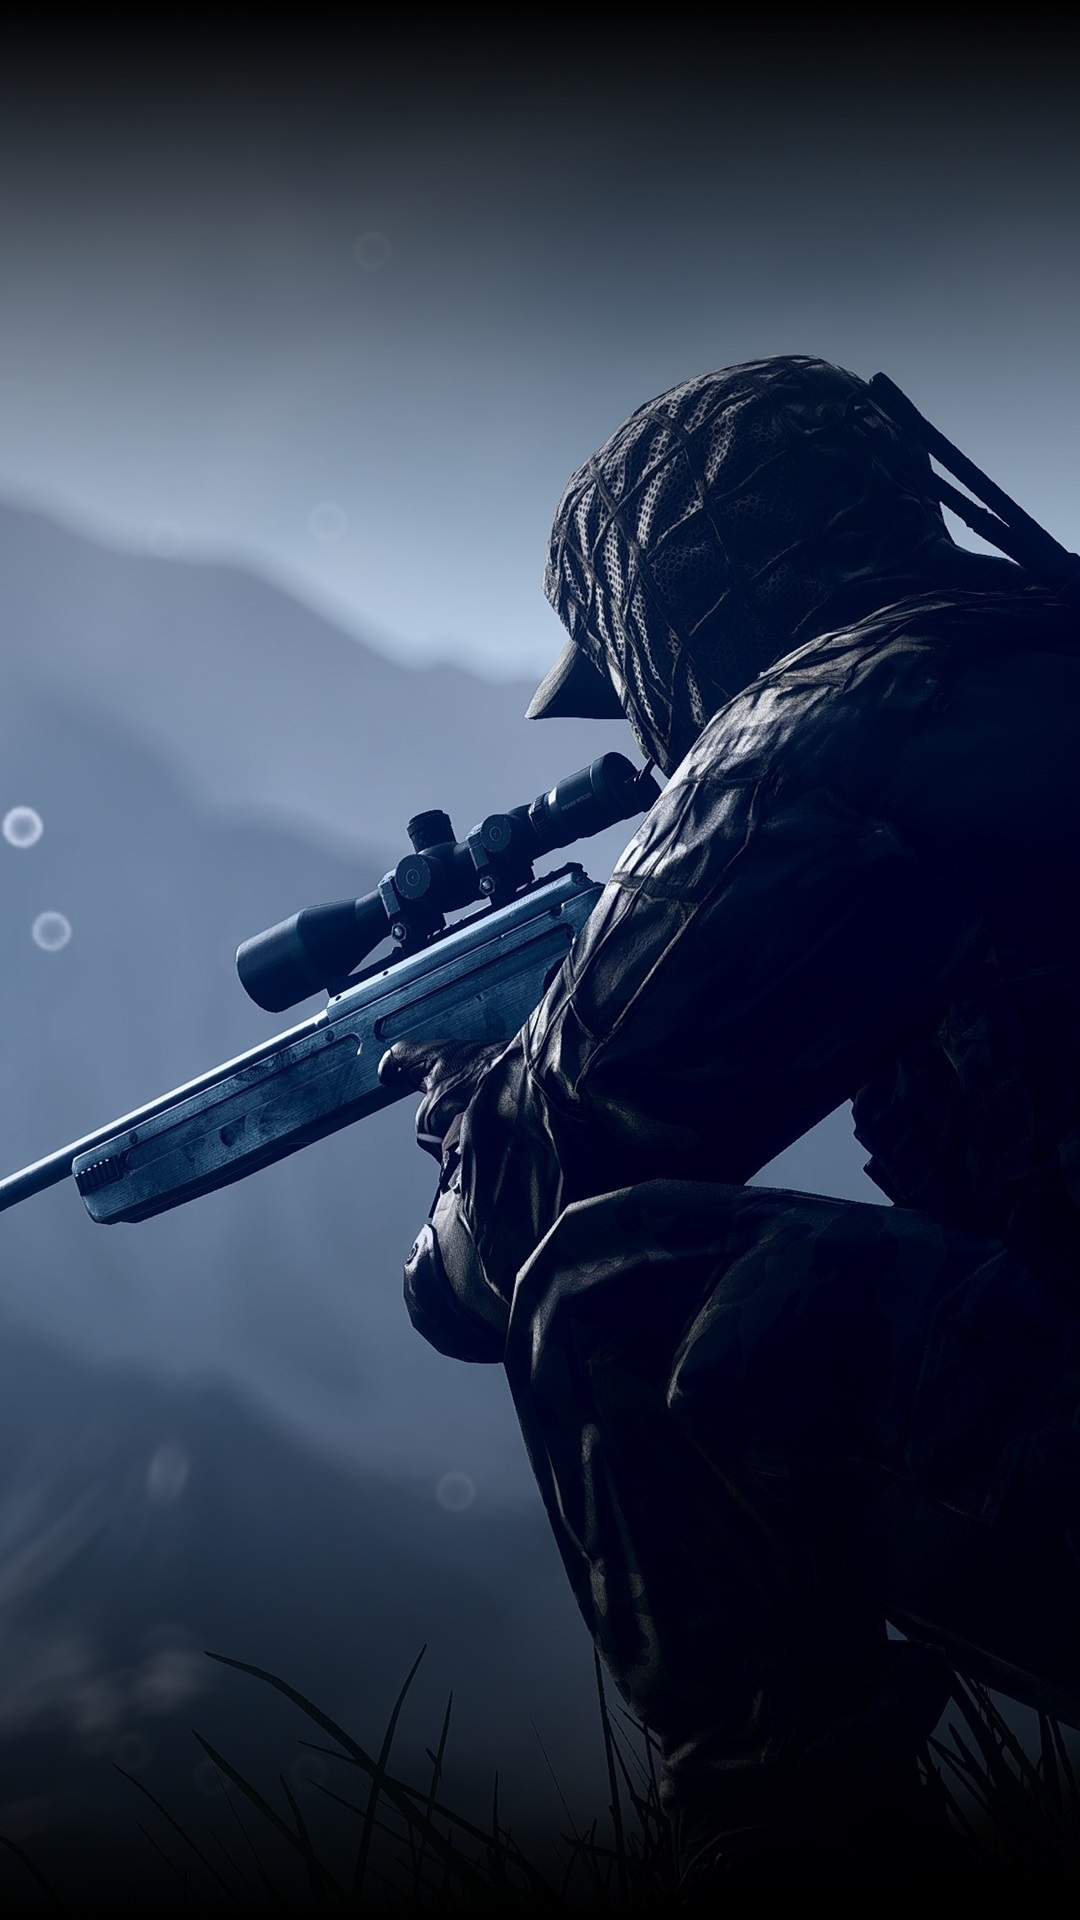 Wallpaper Battlefield 4, soldier, sniper 3840x2160 UHD 4K Picture, Image